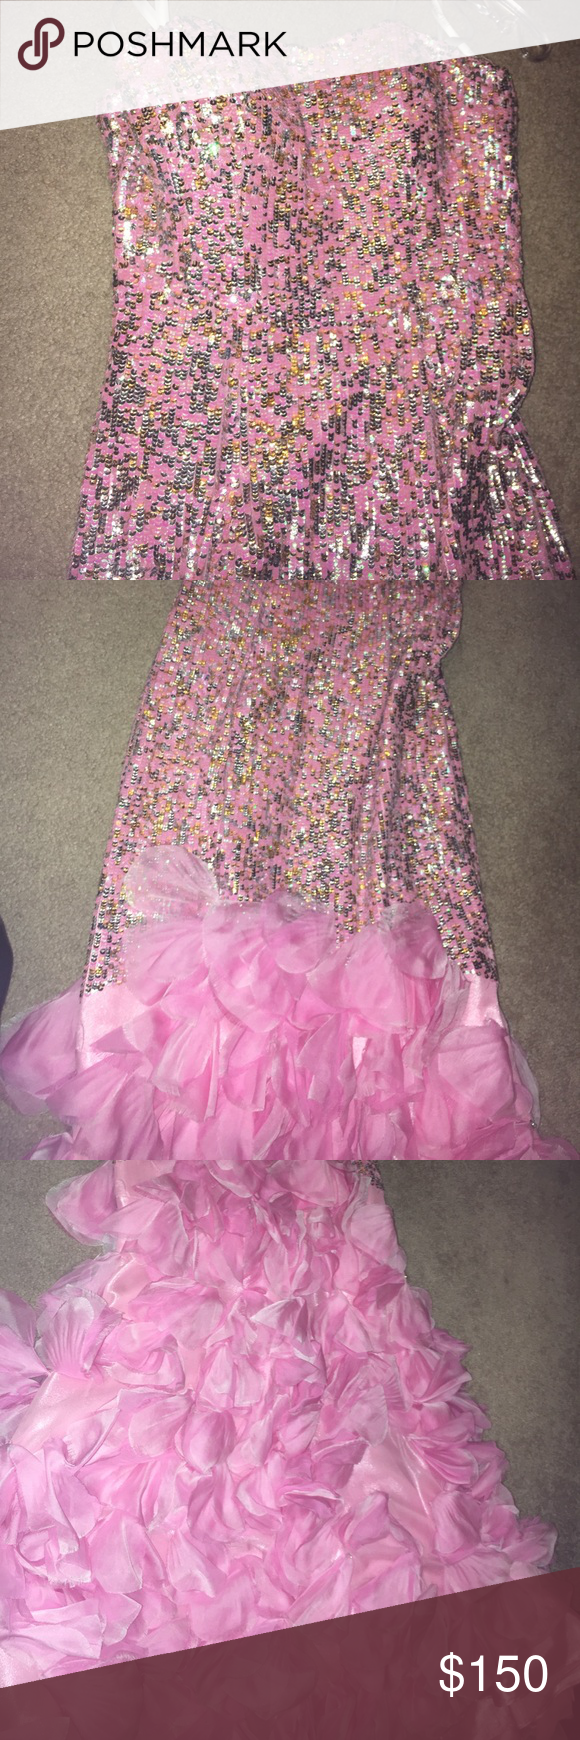 Sherri hill prom dress sherri hill prom dresses prom and feathers